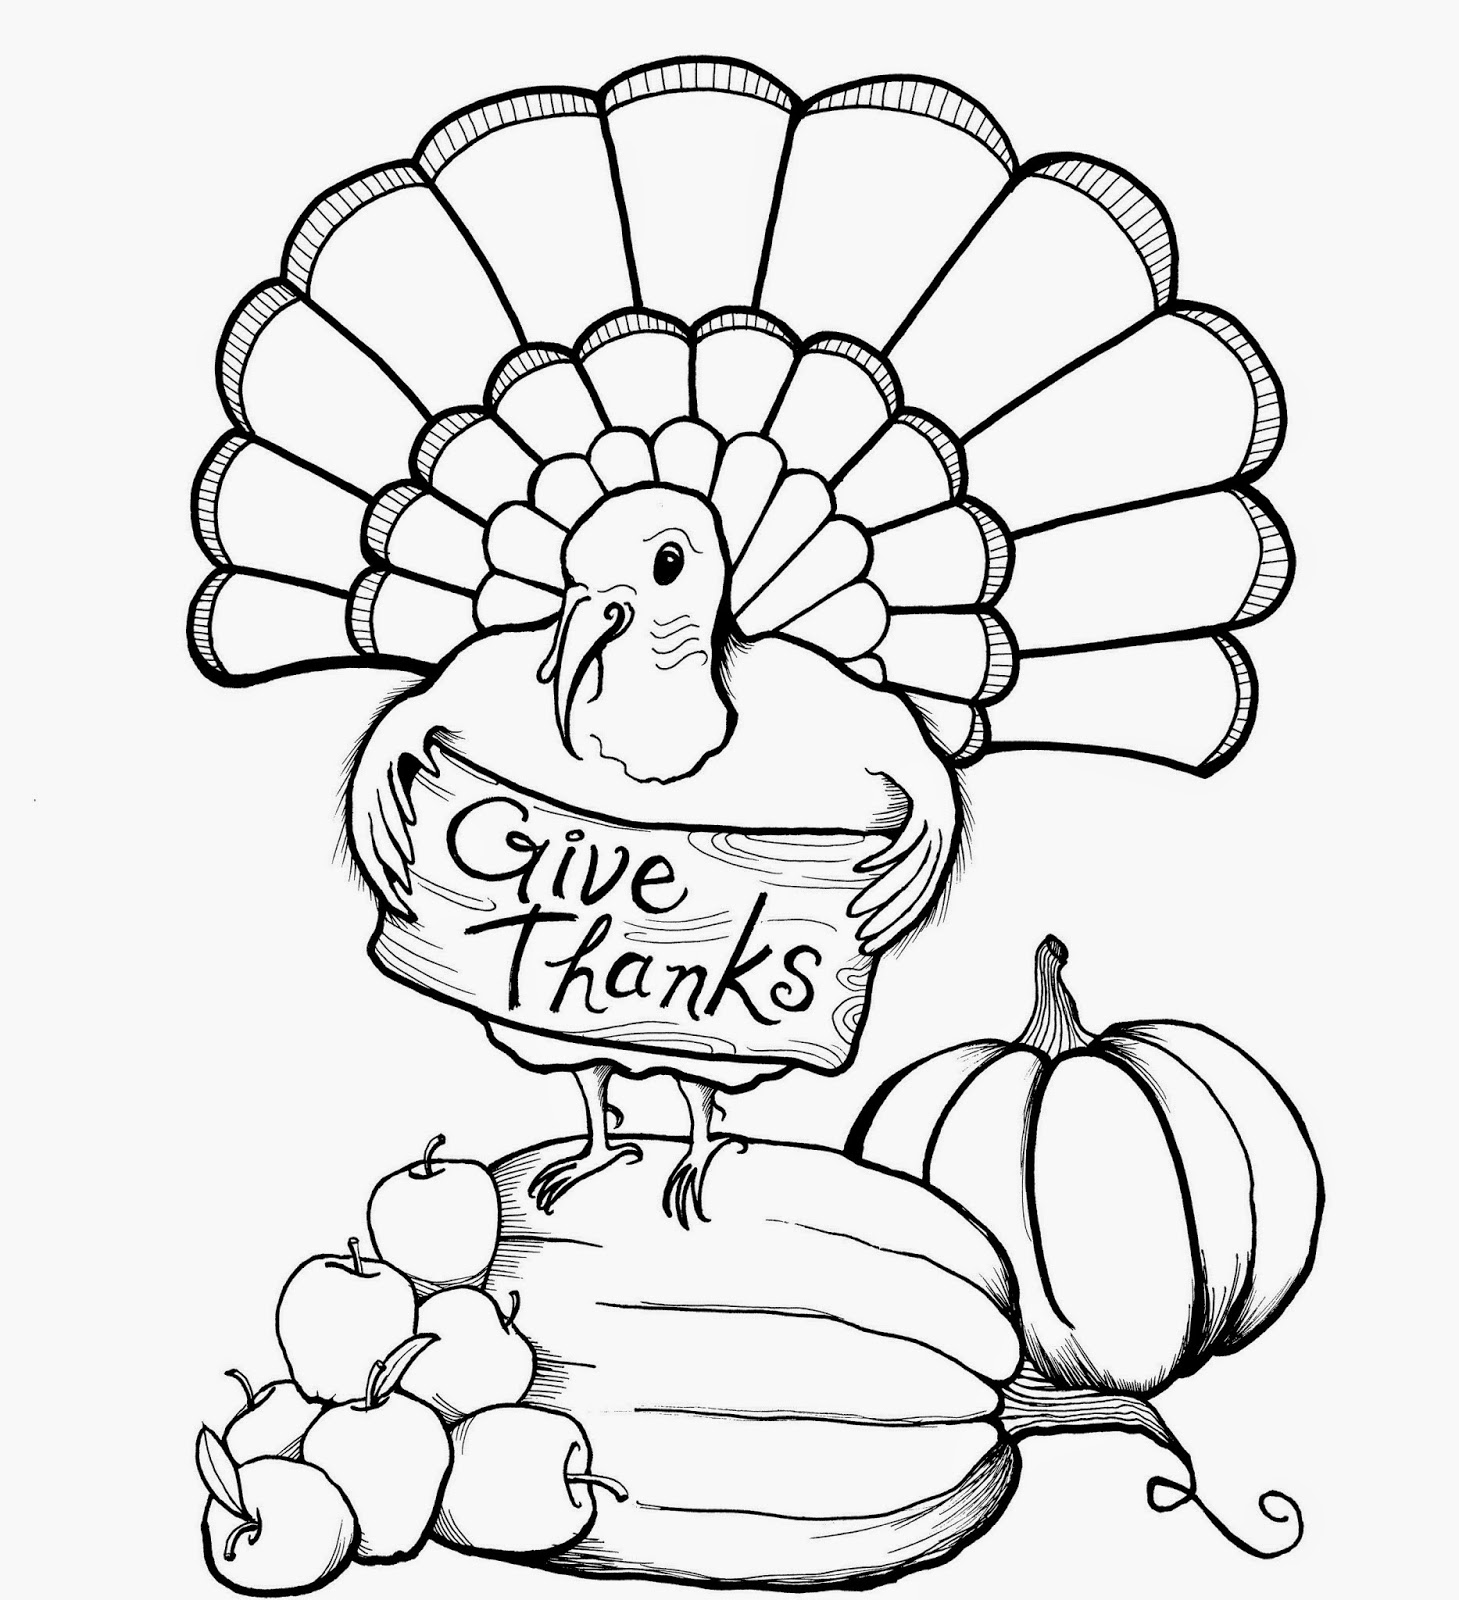 coloring thanksgiving pictures christian thanksgiving coloring pages getcoloringpagescom coloring thanksgiving pictures